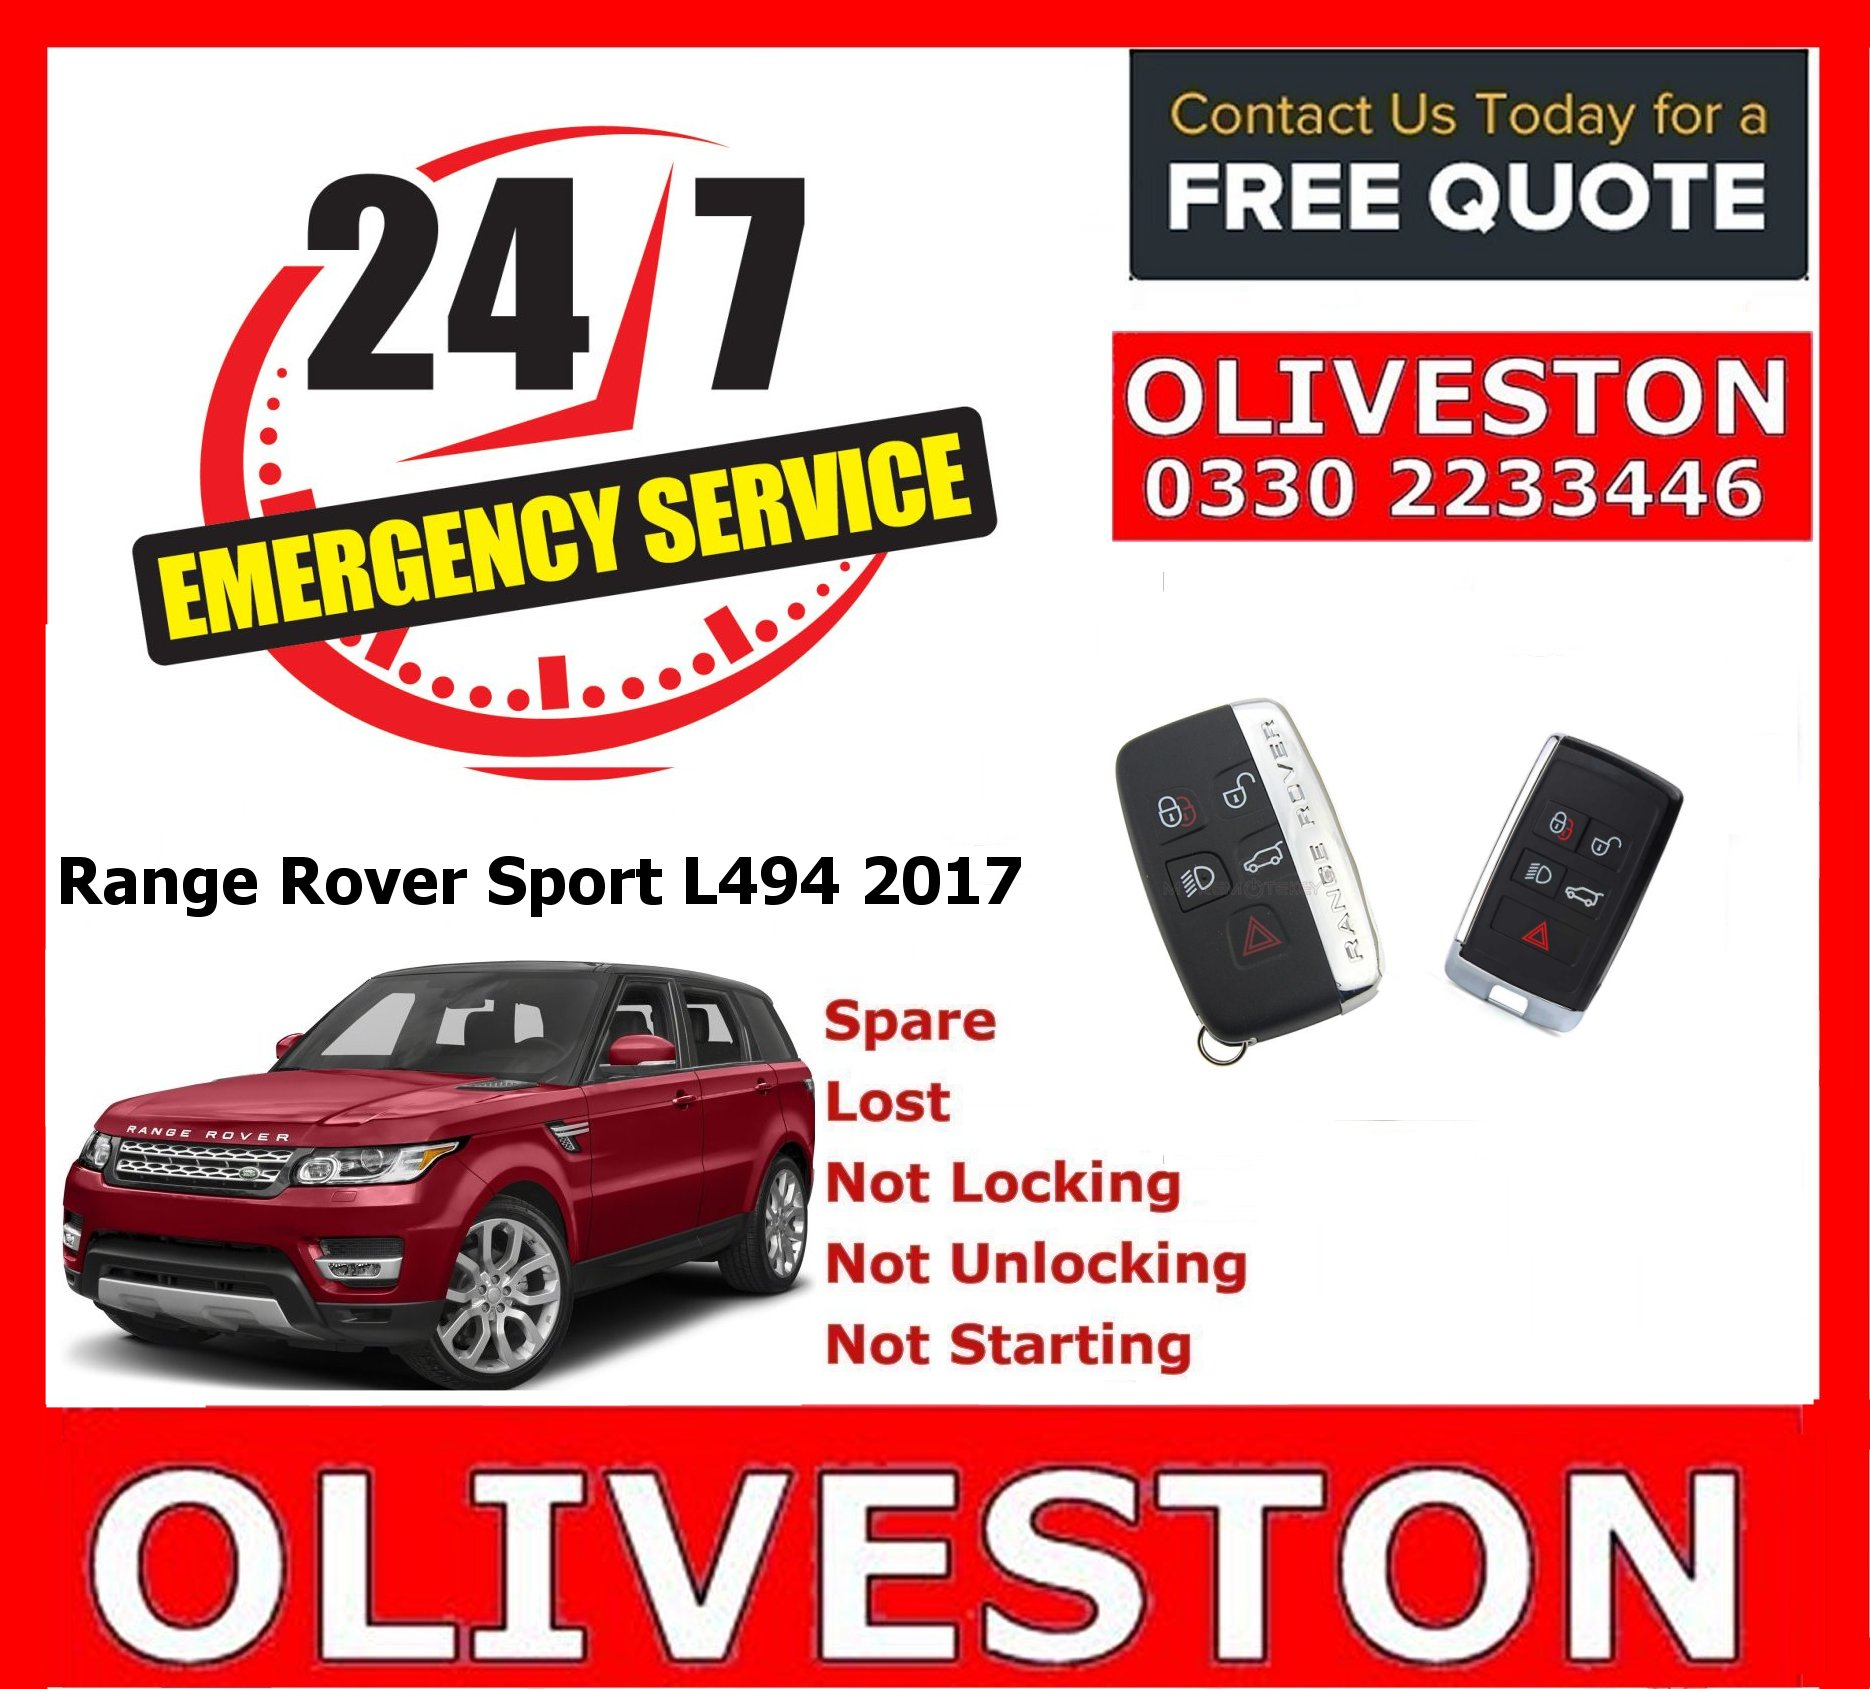 Range Rover Land Rover Jaguar Spare lost keys Peterborough Cambridge Wisbech St Neots Huntingdon March Ely St Ives Whittlesley Chatteris Soham Cambourne Yaxley Cambridgeshire East